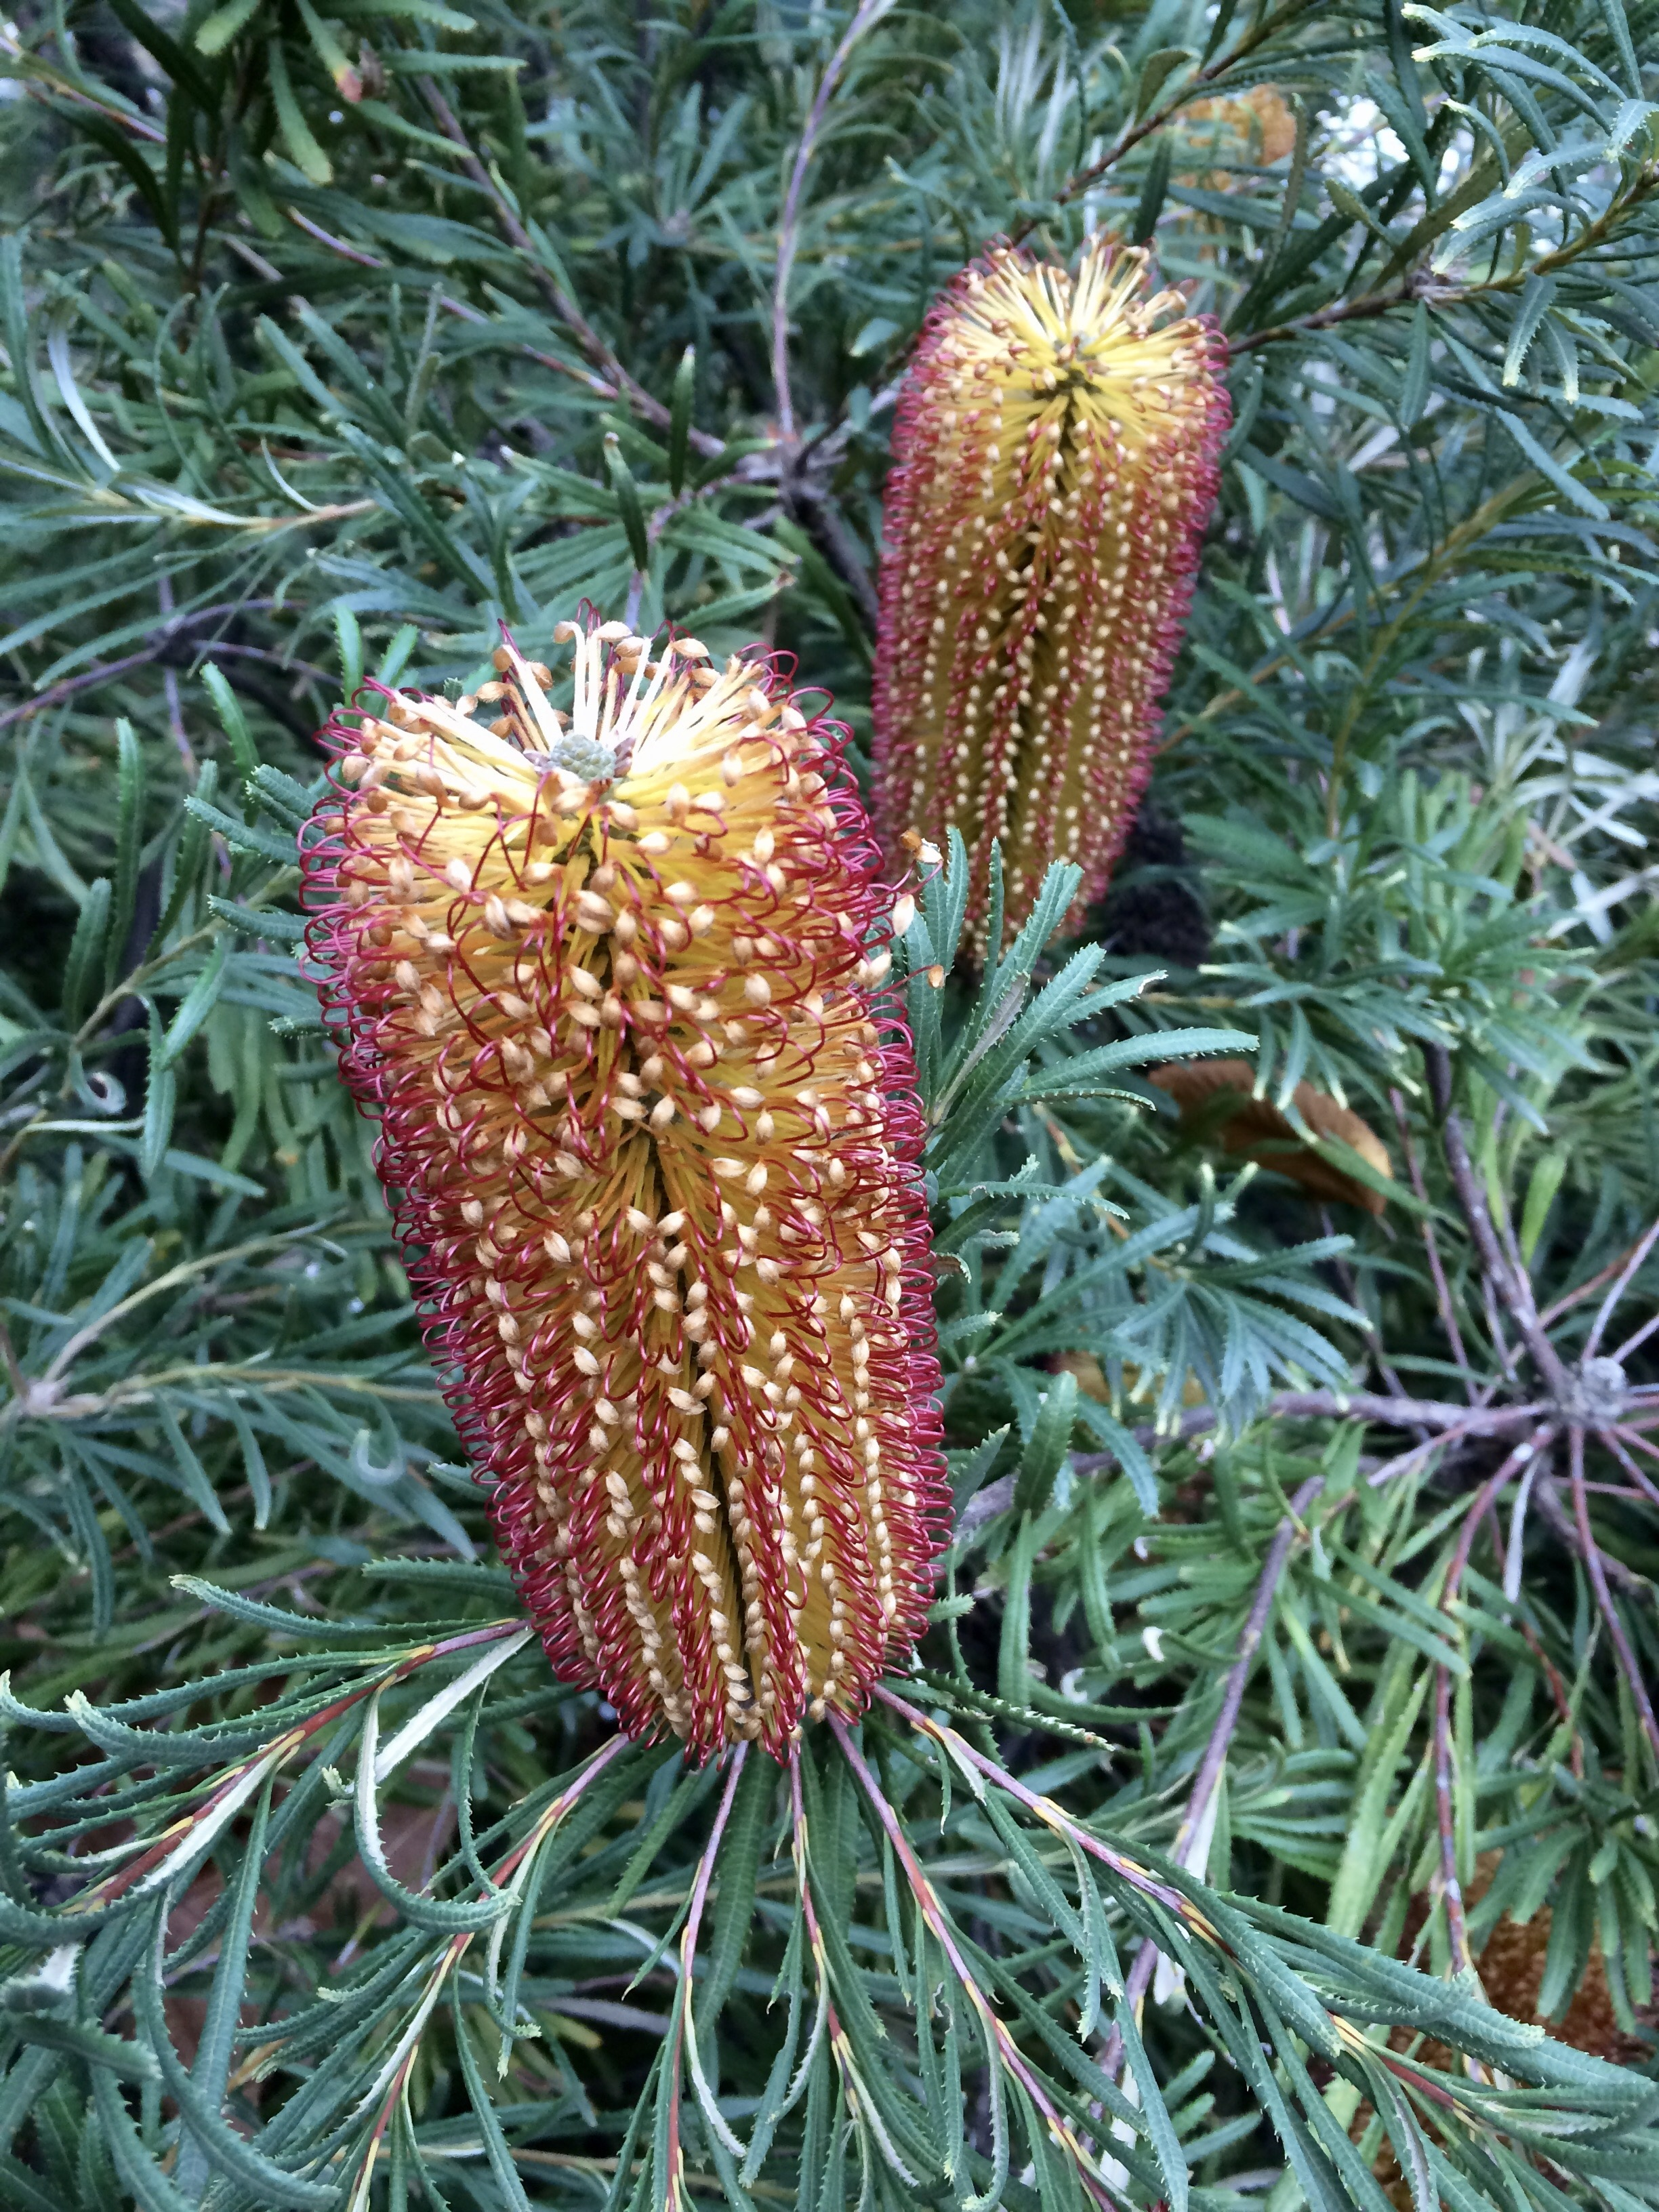 Some of the lovely bottle brushes in flower at the gardens in winter